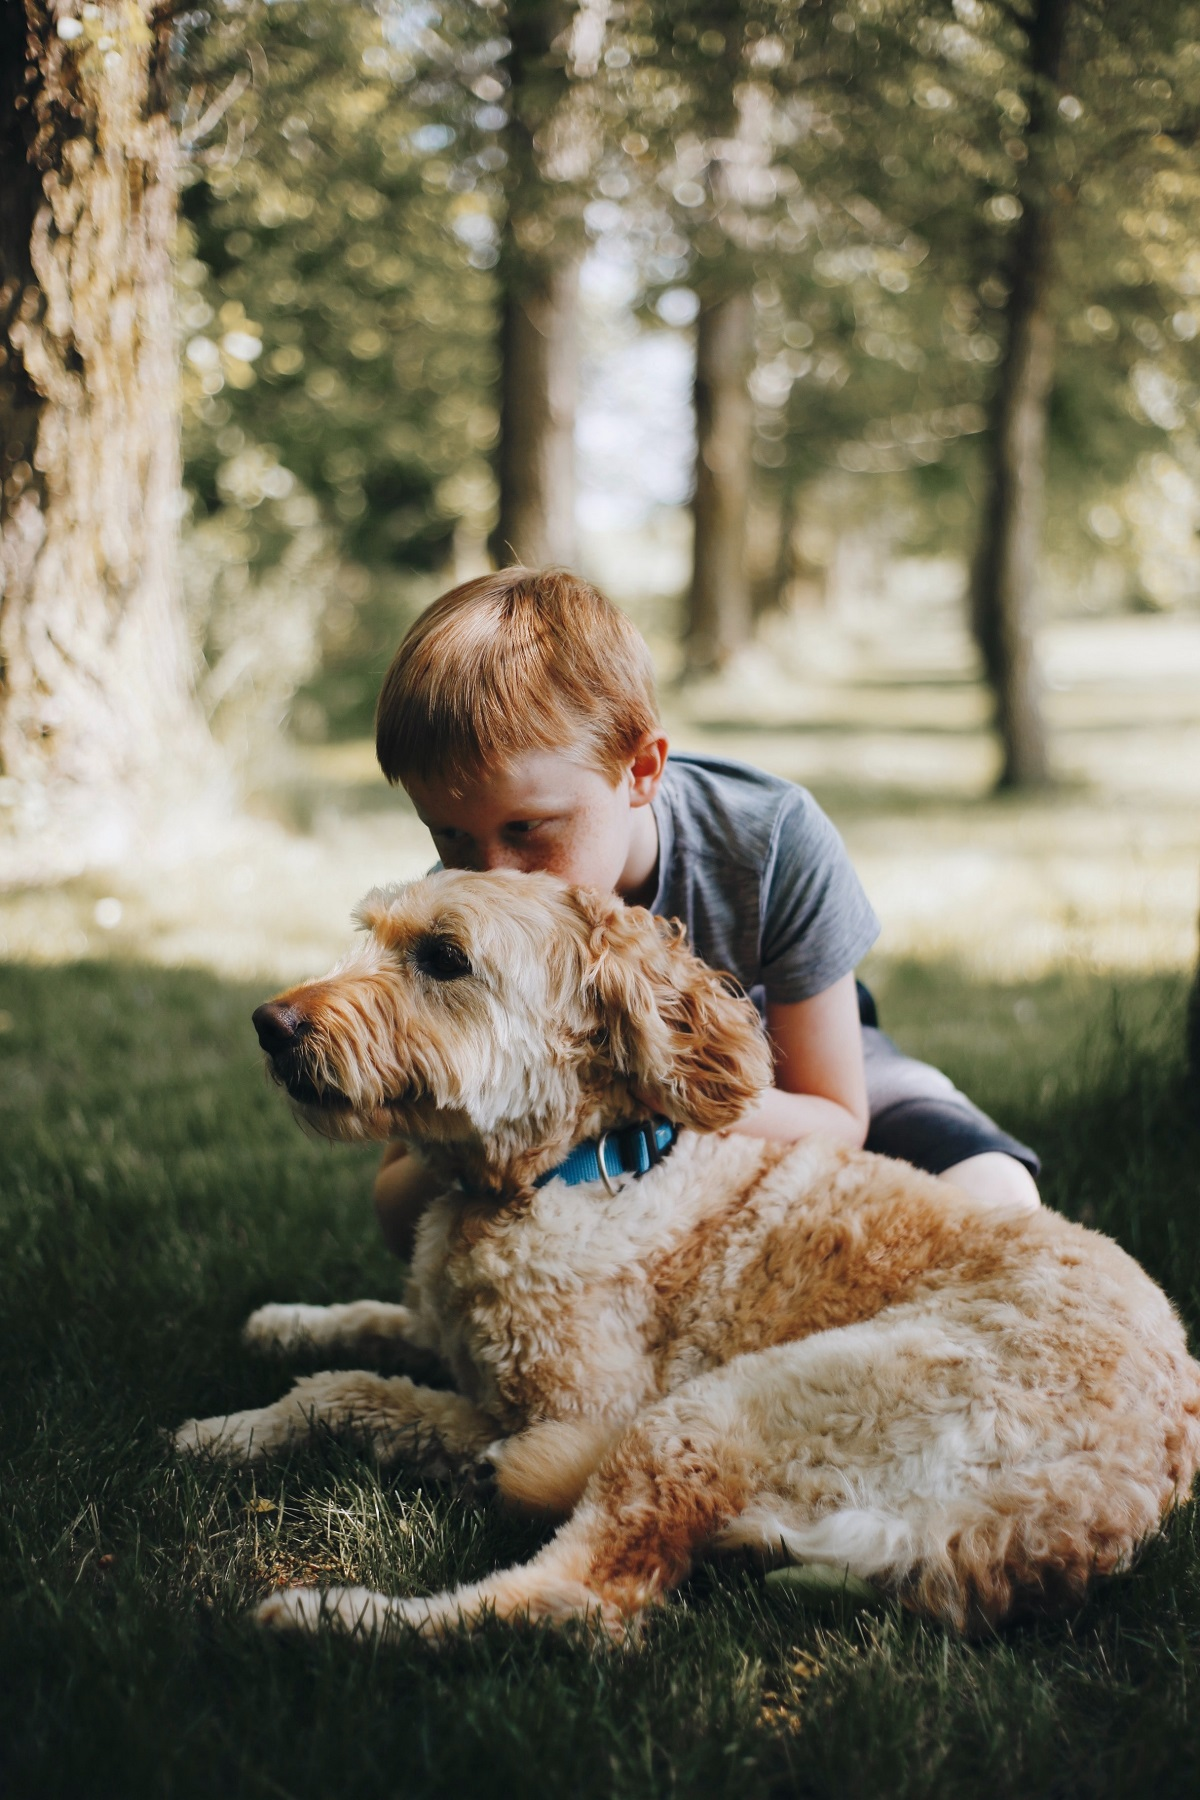 Dogs Help Children With Autism